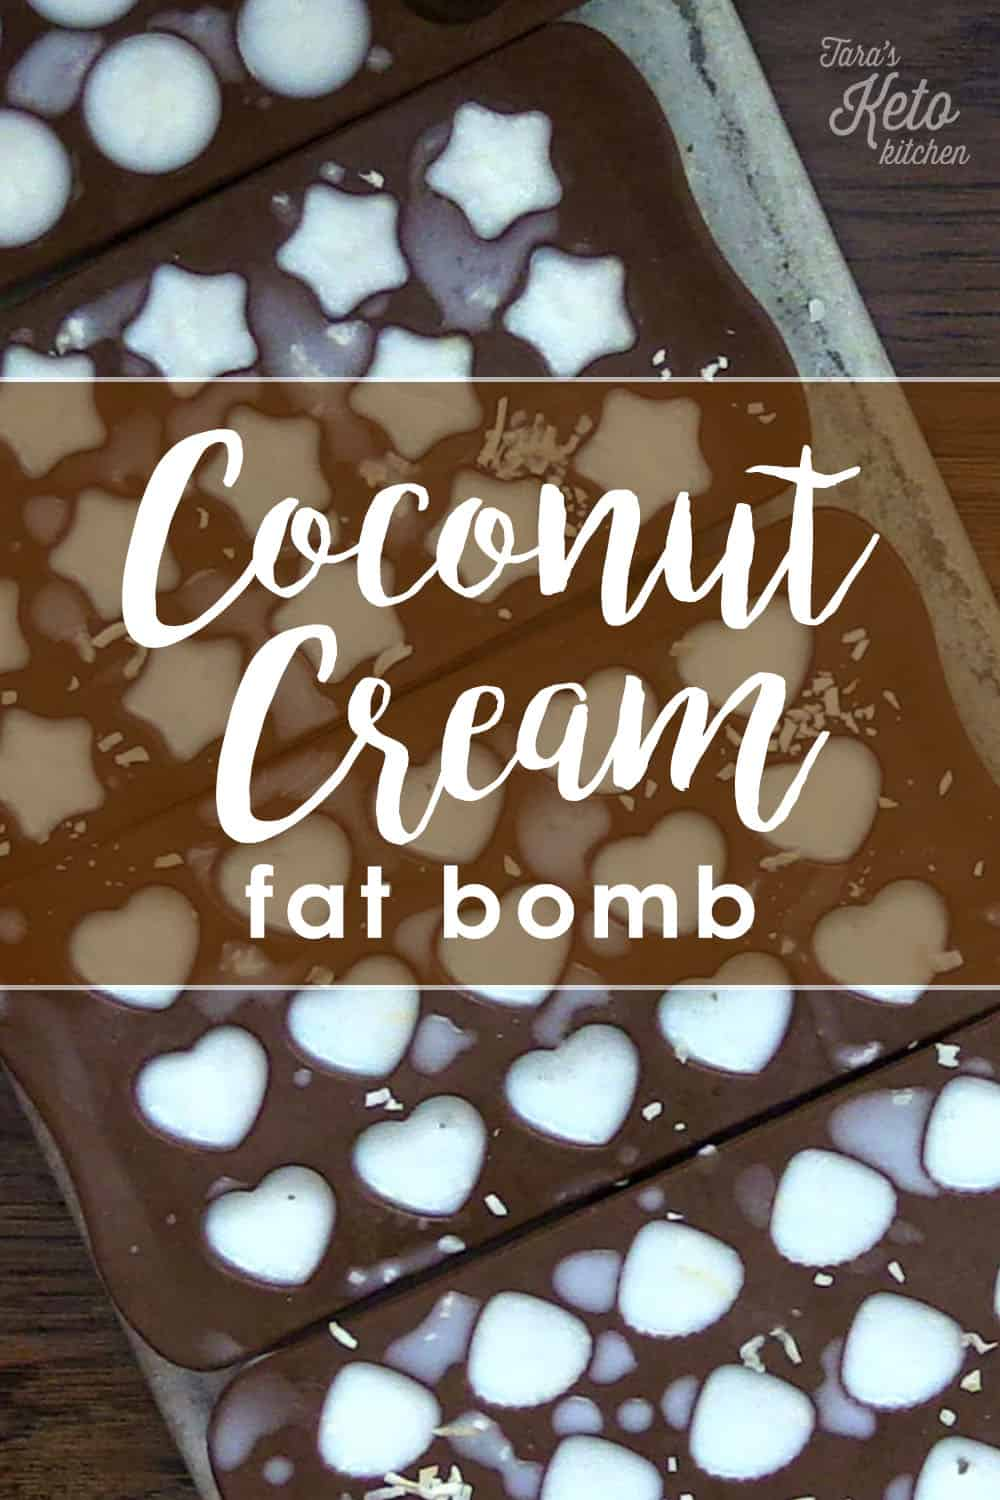 coconut cream fat bomb shown in molds of hearts